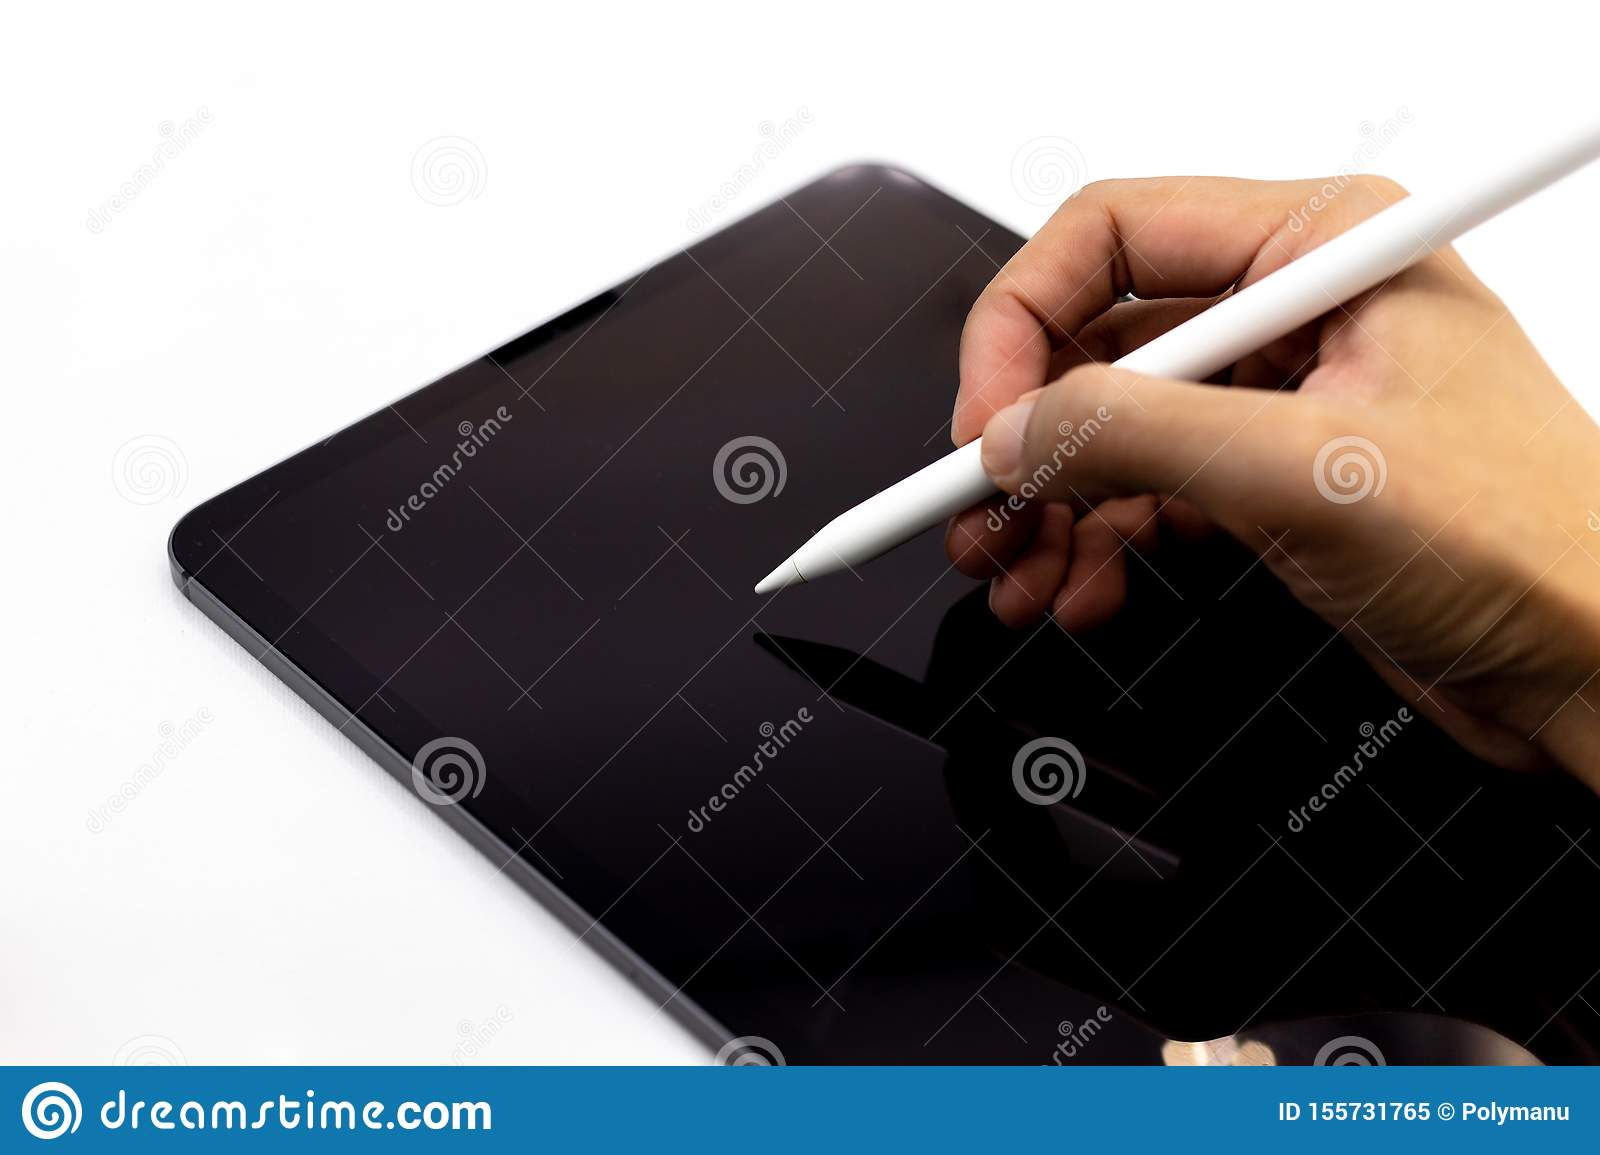 Tablet, Smartphone, image use for mobile applications and multimedia programs